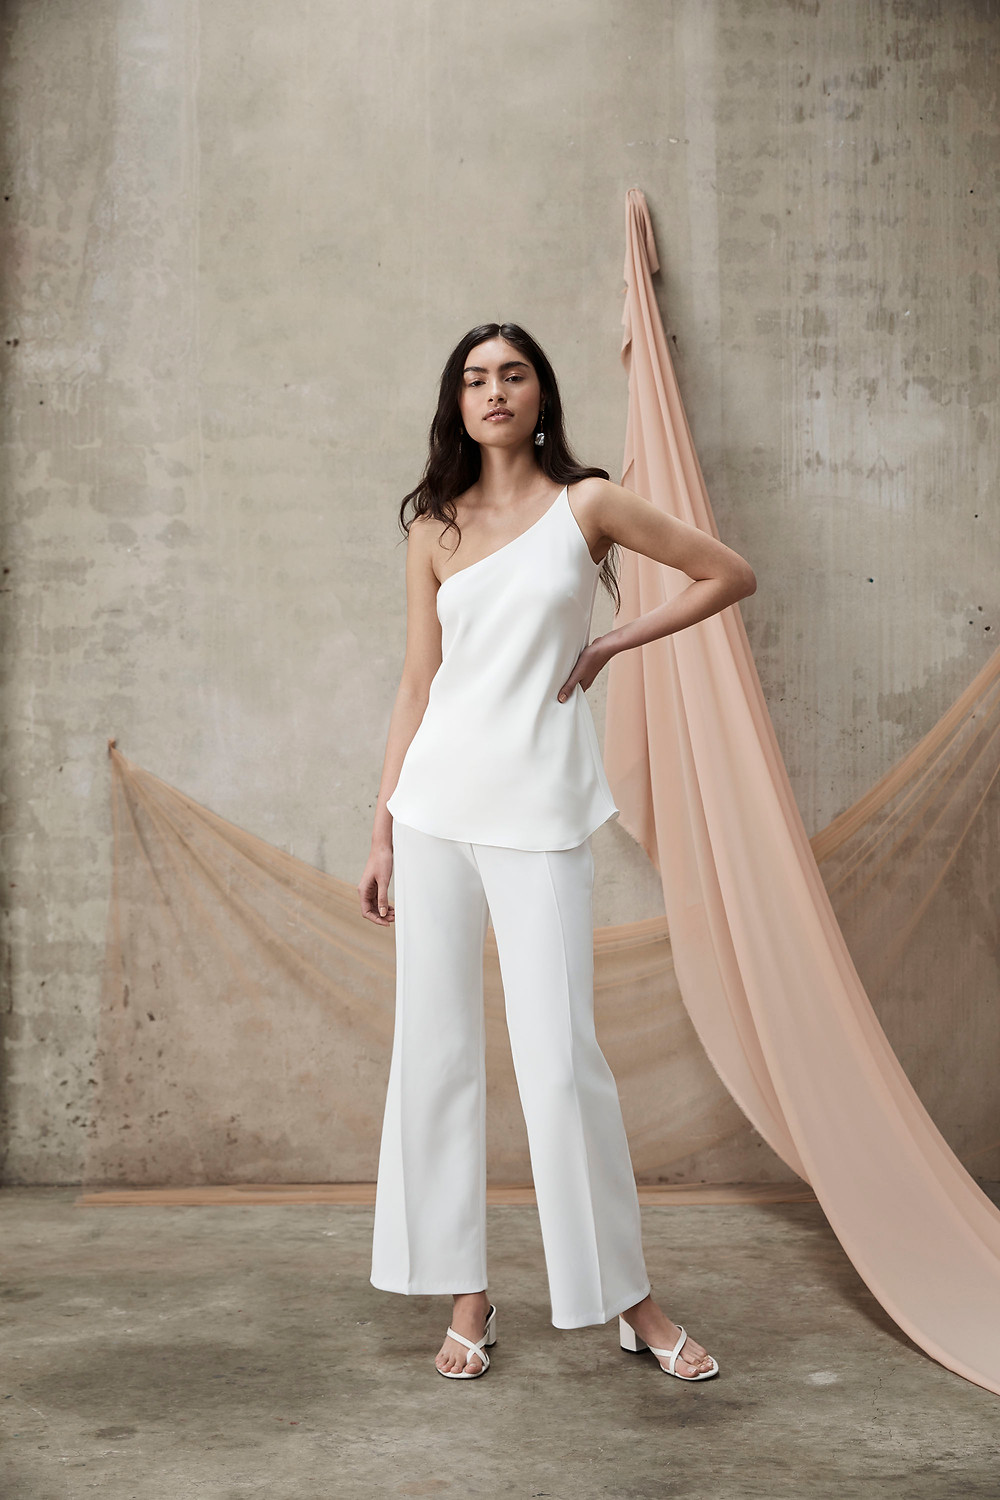 Bride wears white bridal pants and a white silk camisole top by Prea James Bridal, with minimalist sandals and pearl earrings.